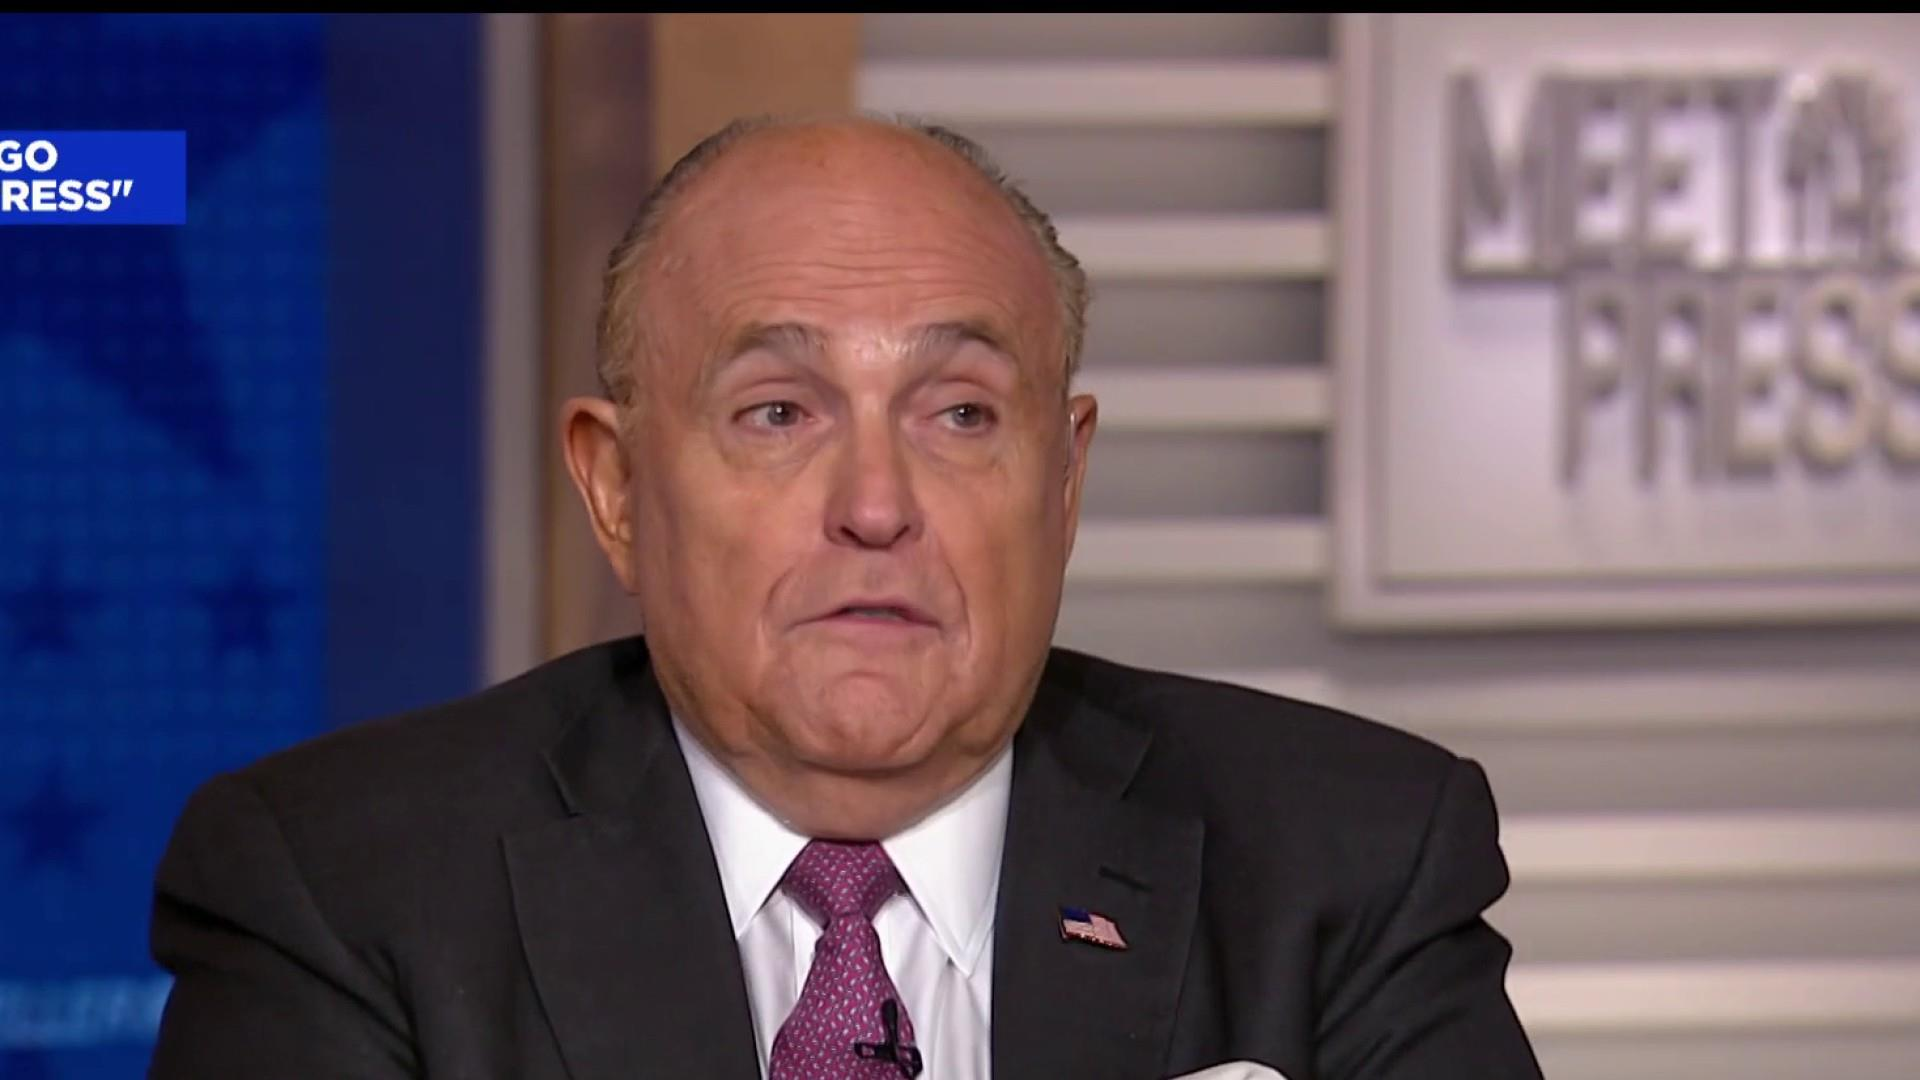 Giuliani: 'Nothing wrong' with taking help from the Russians